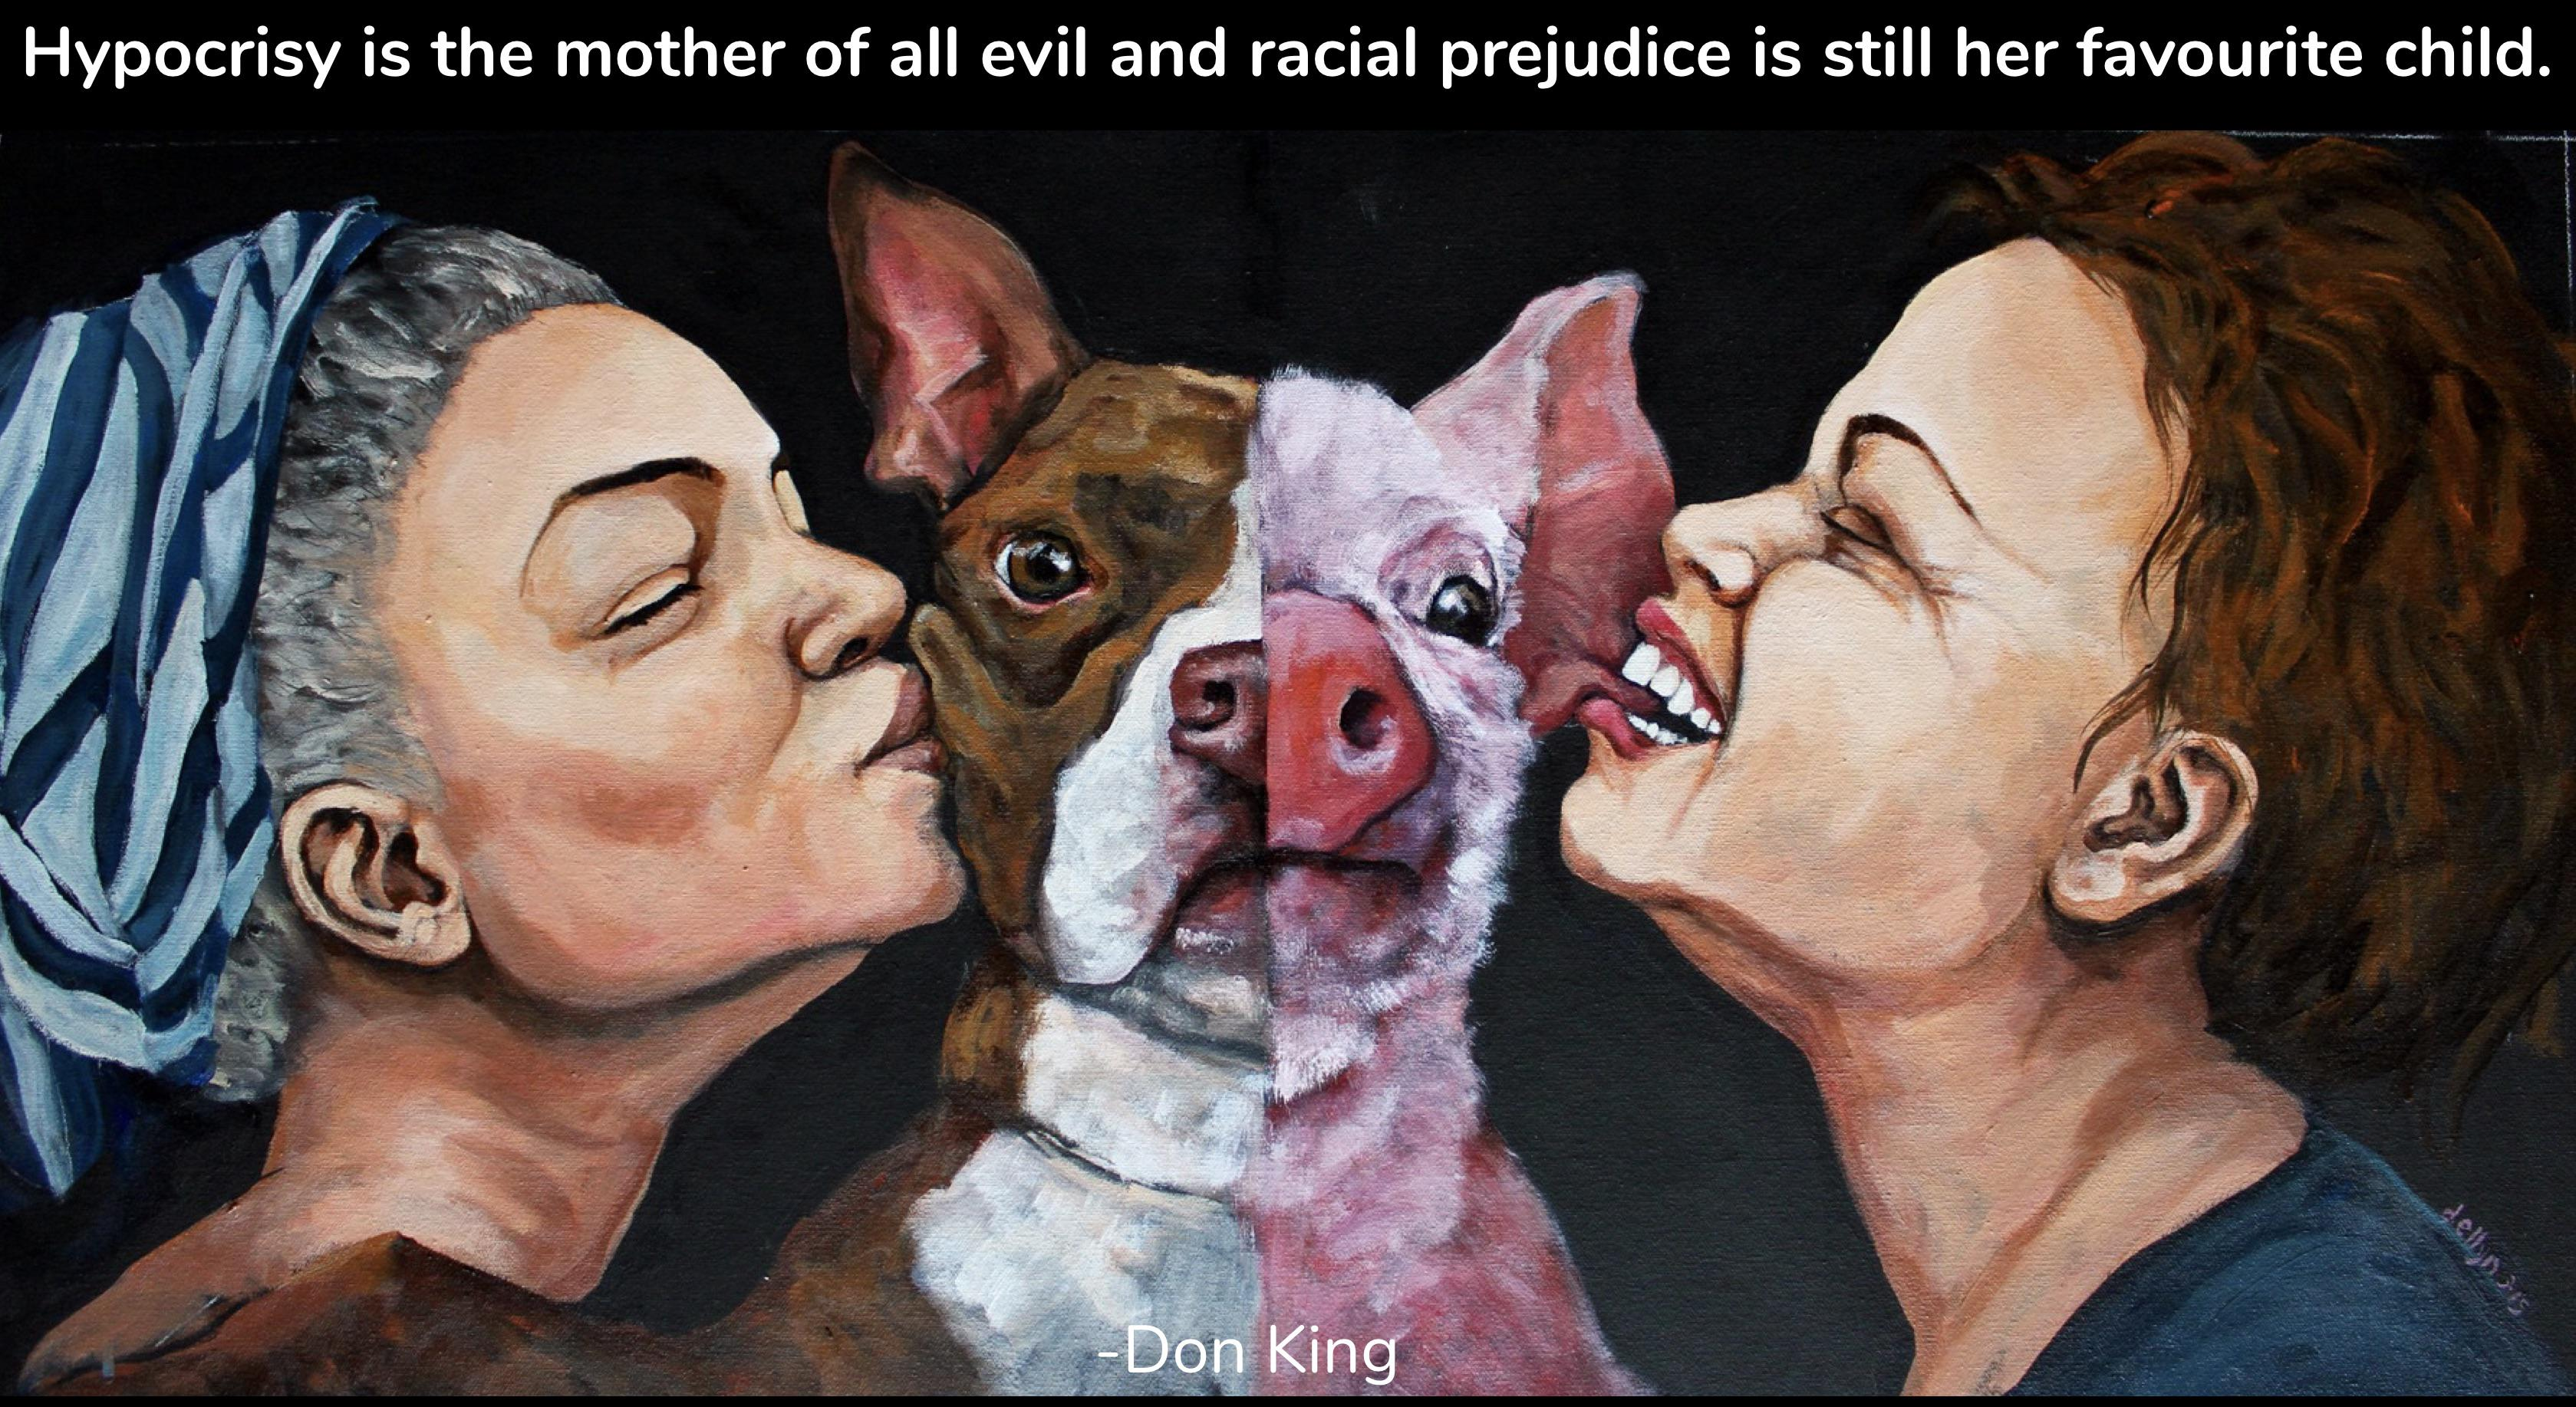 Hypocrisy is the mother of all evil and racial prejudice is still her favourite child. -Don King [3358 × 1834] (Artist Dana Ellyn)